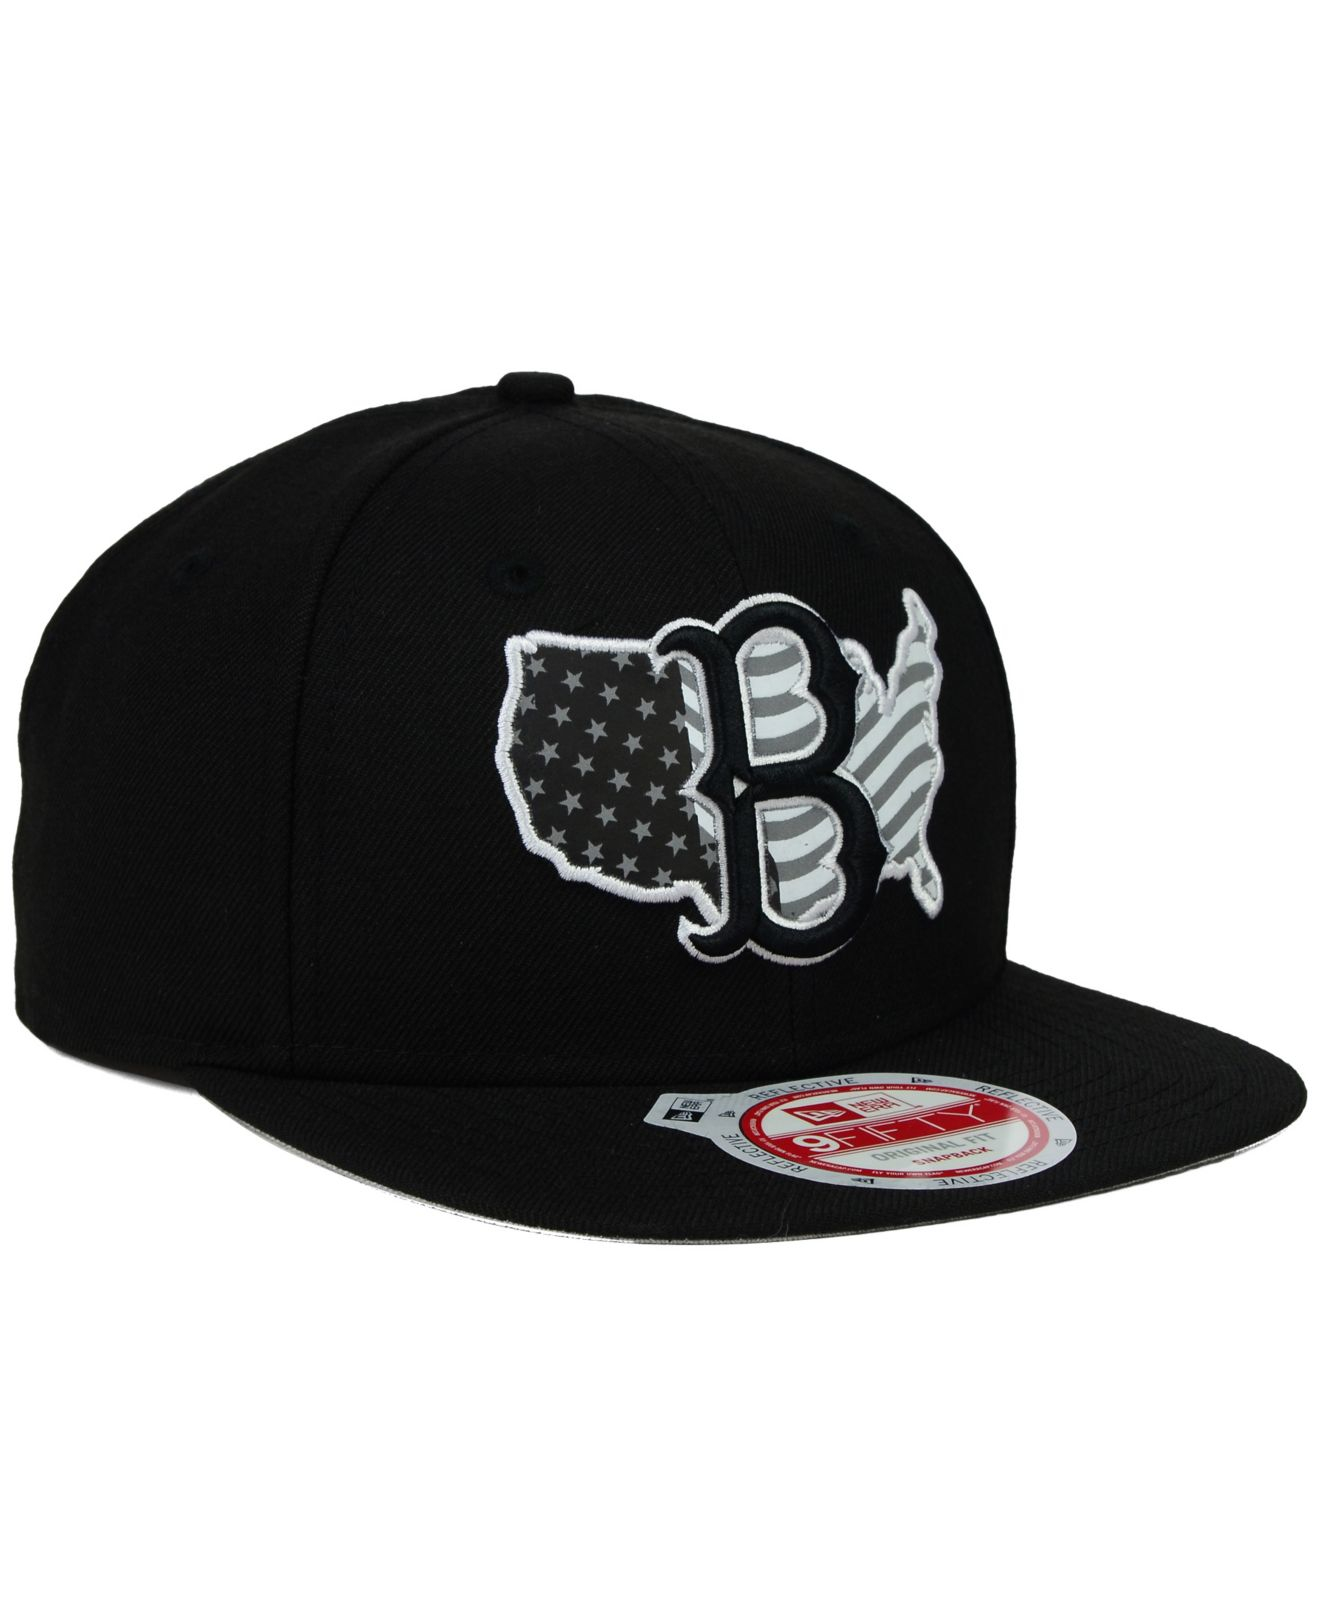 Lyst Ktz Brooklyn Dodgers Usa Reflective 9fifty Snapback